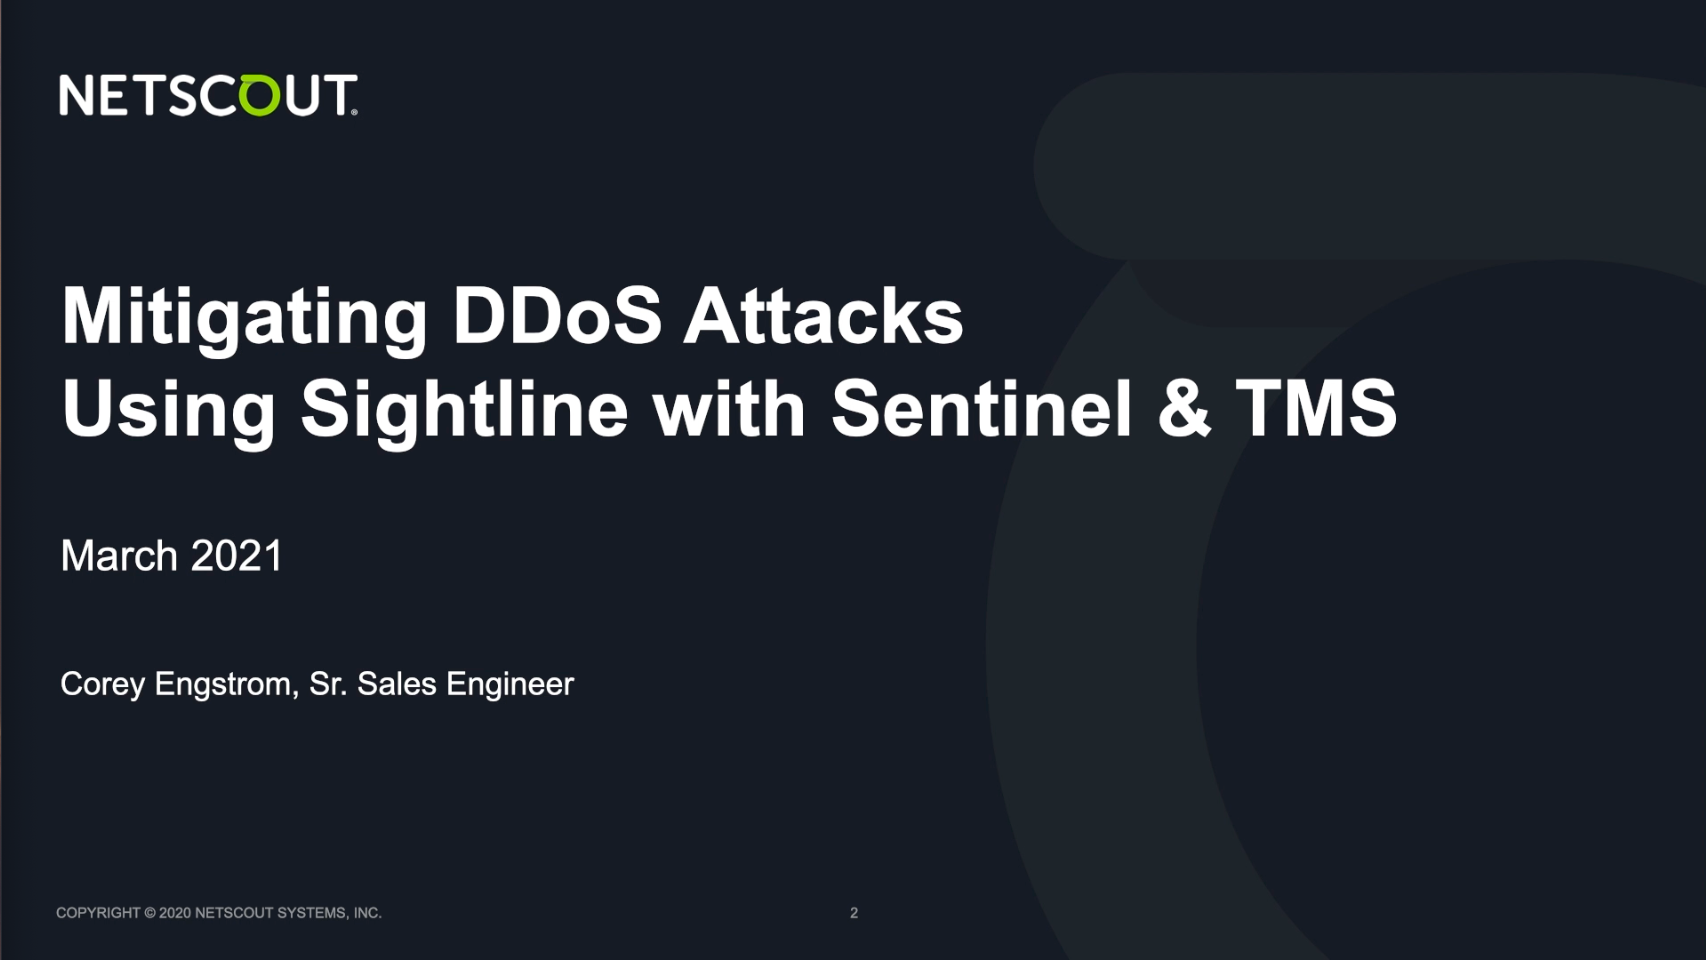 Mitigating DDoS Attacks Using Sightline with Sentinel & TMS